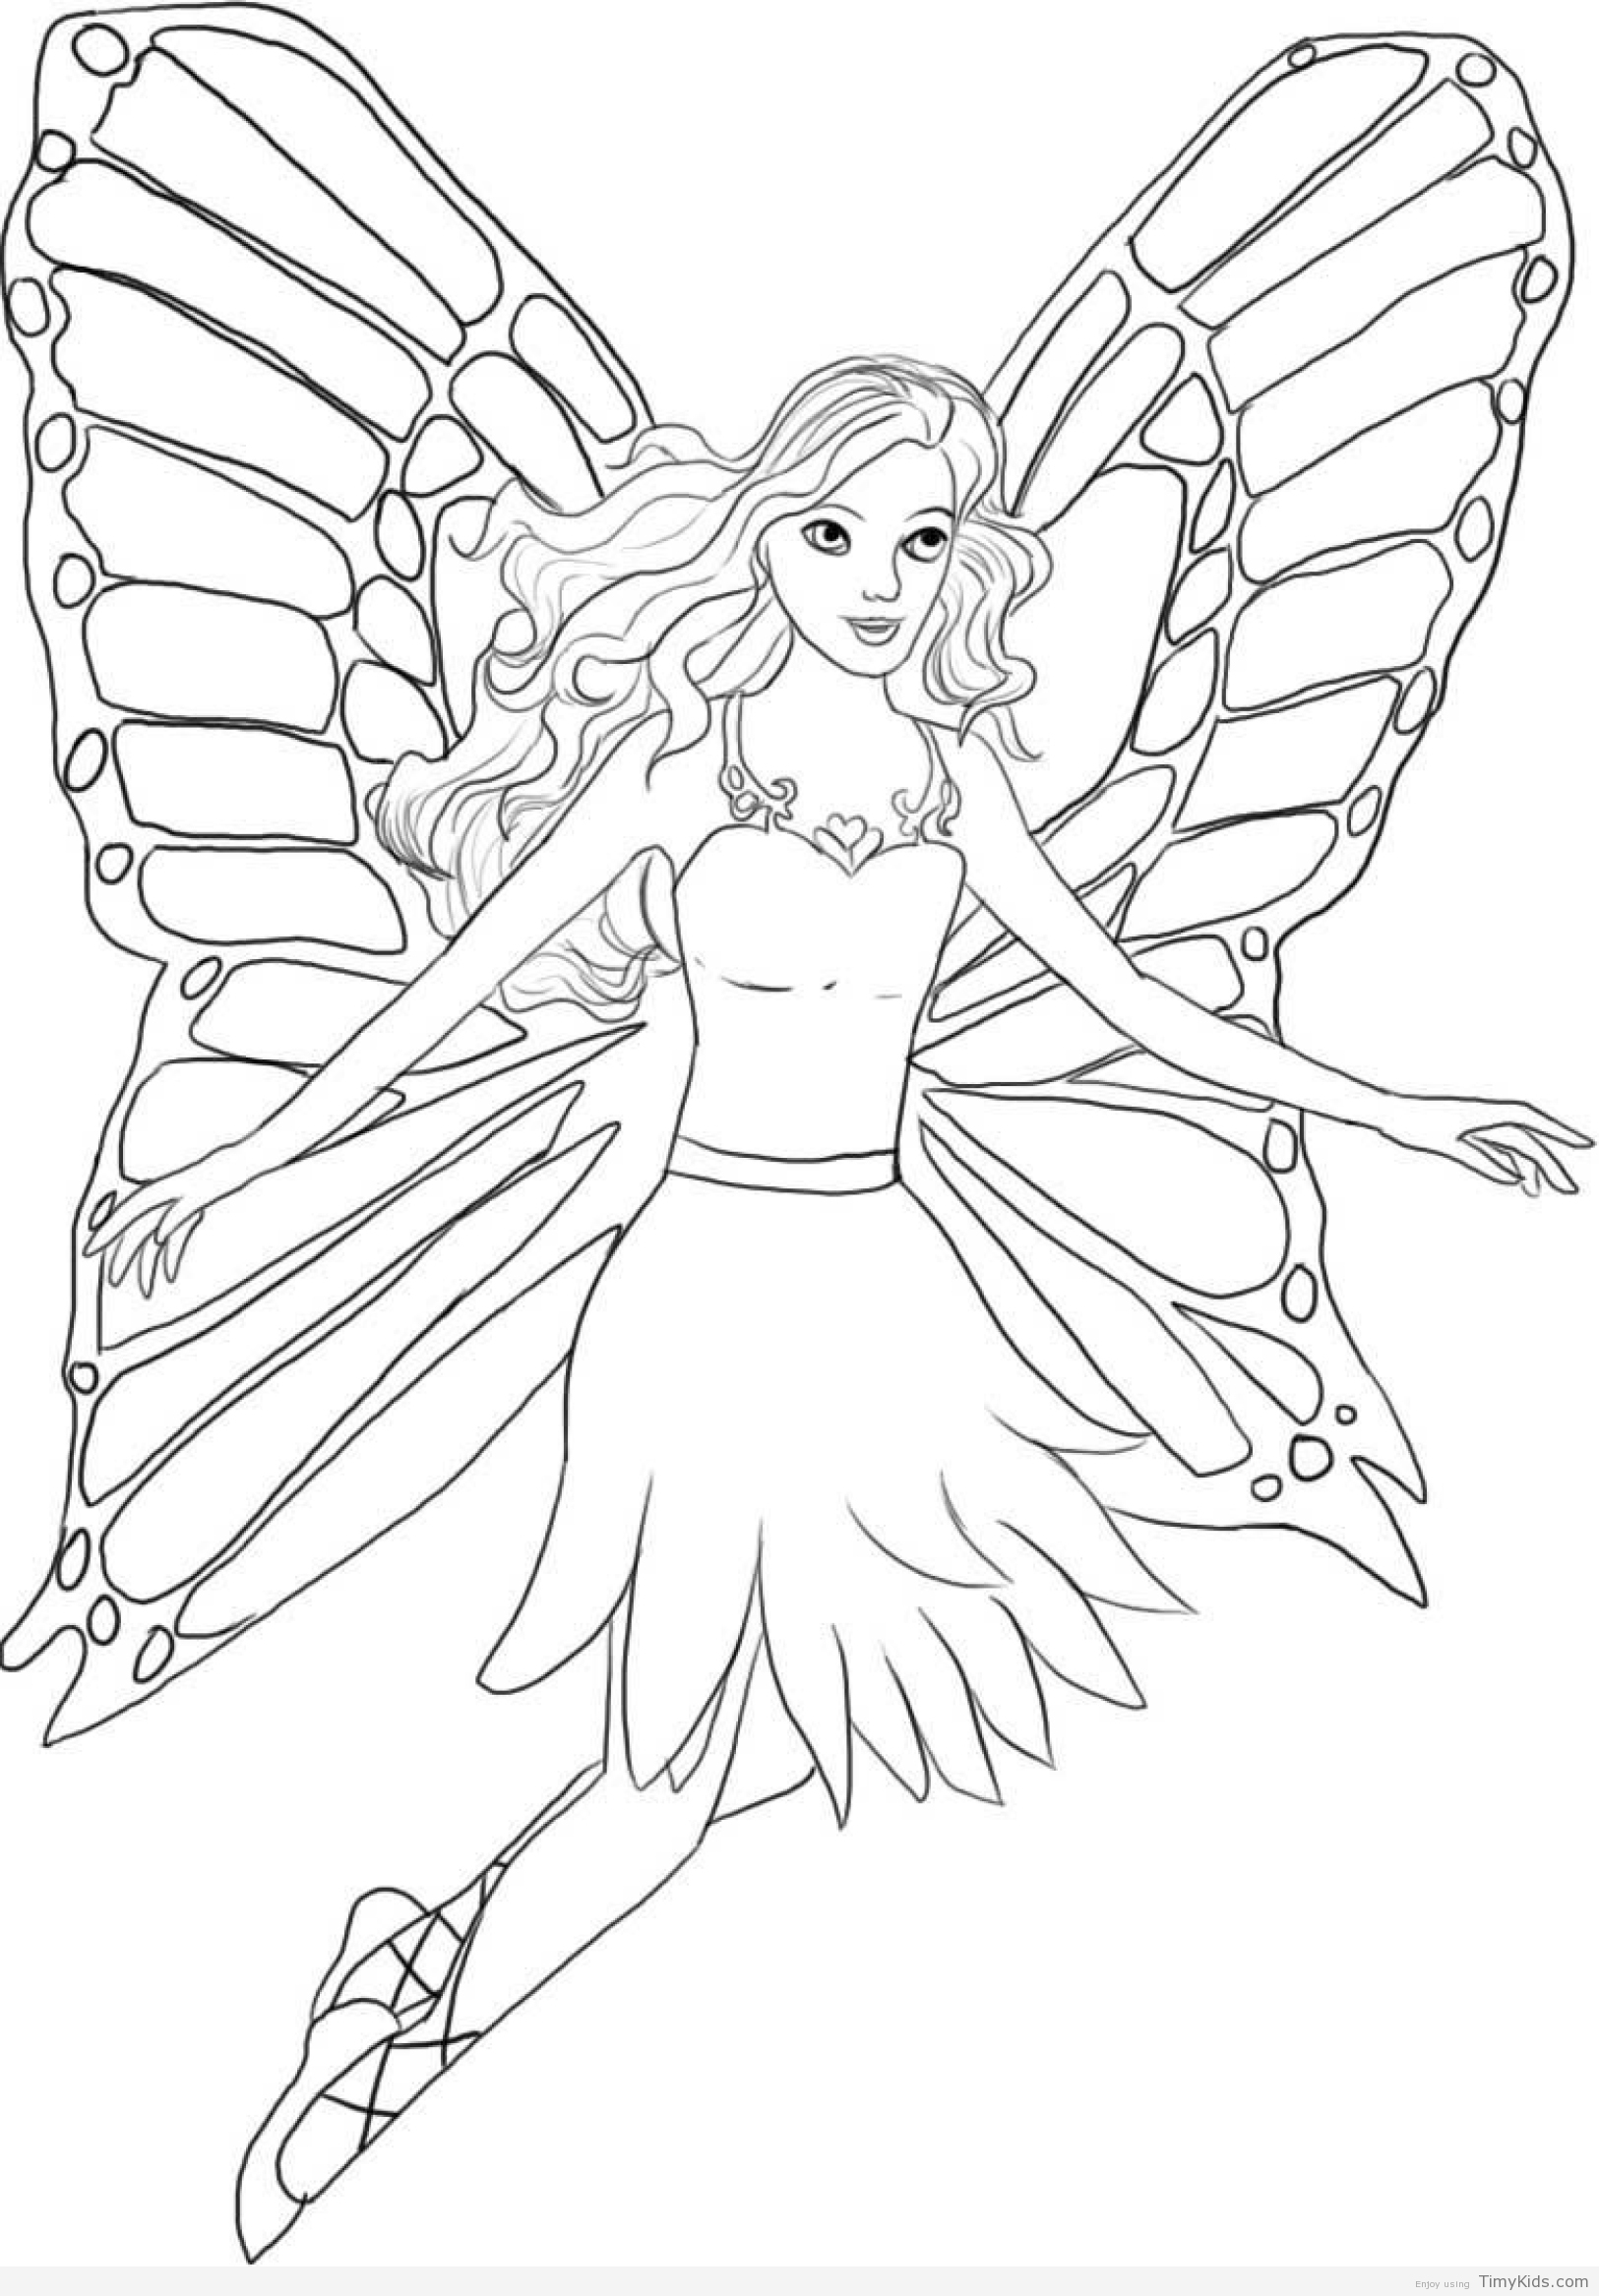 1625x2334 Princess Coloring Page.html Colorings